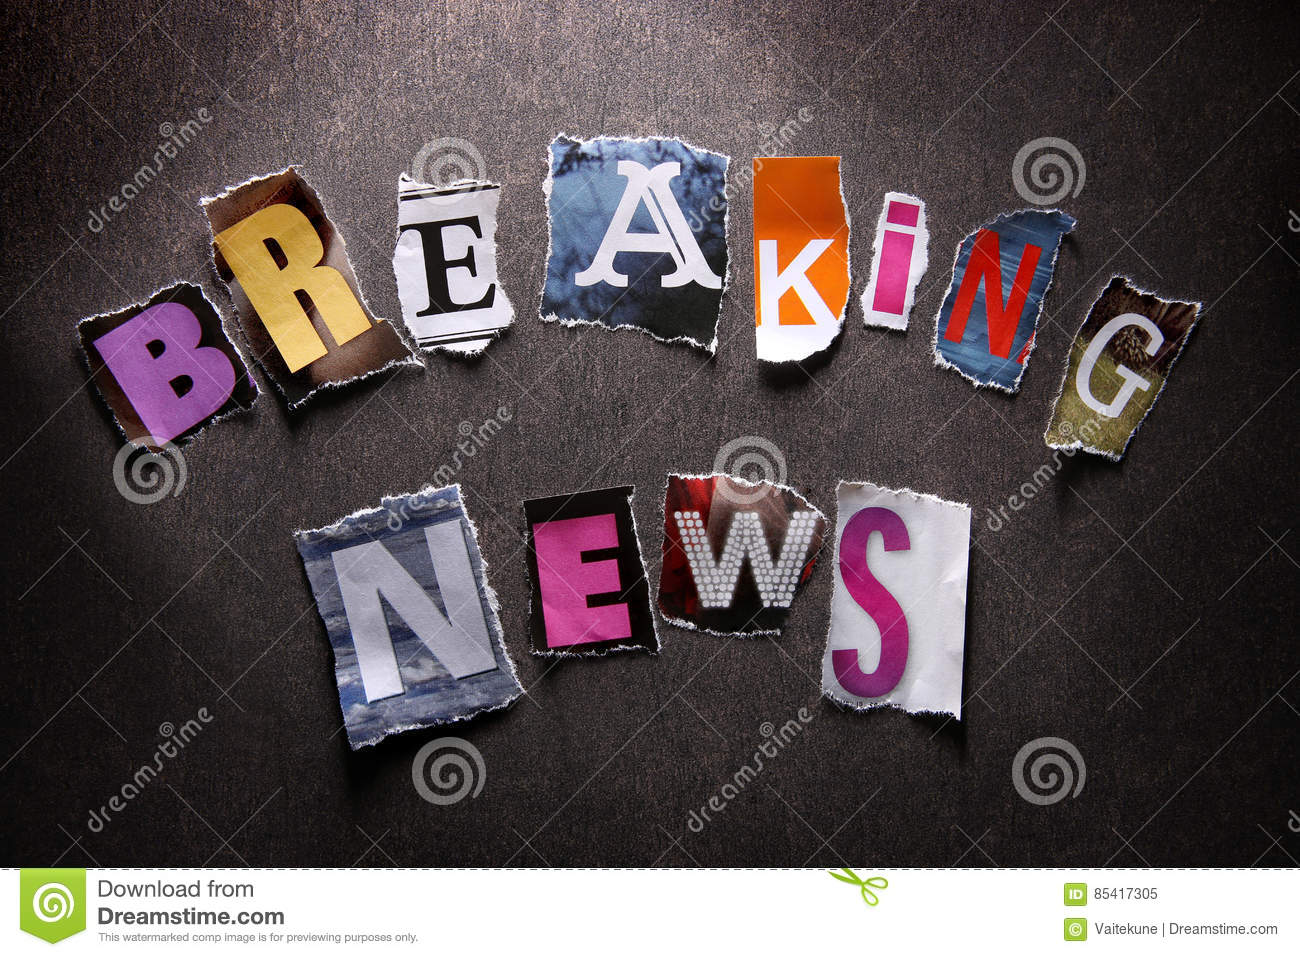 Breaking news  stock image  Image of background, letter